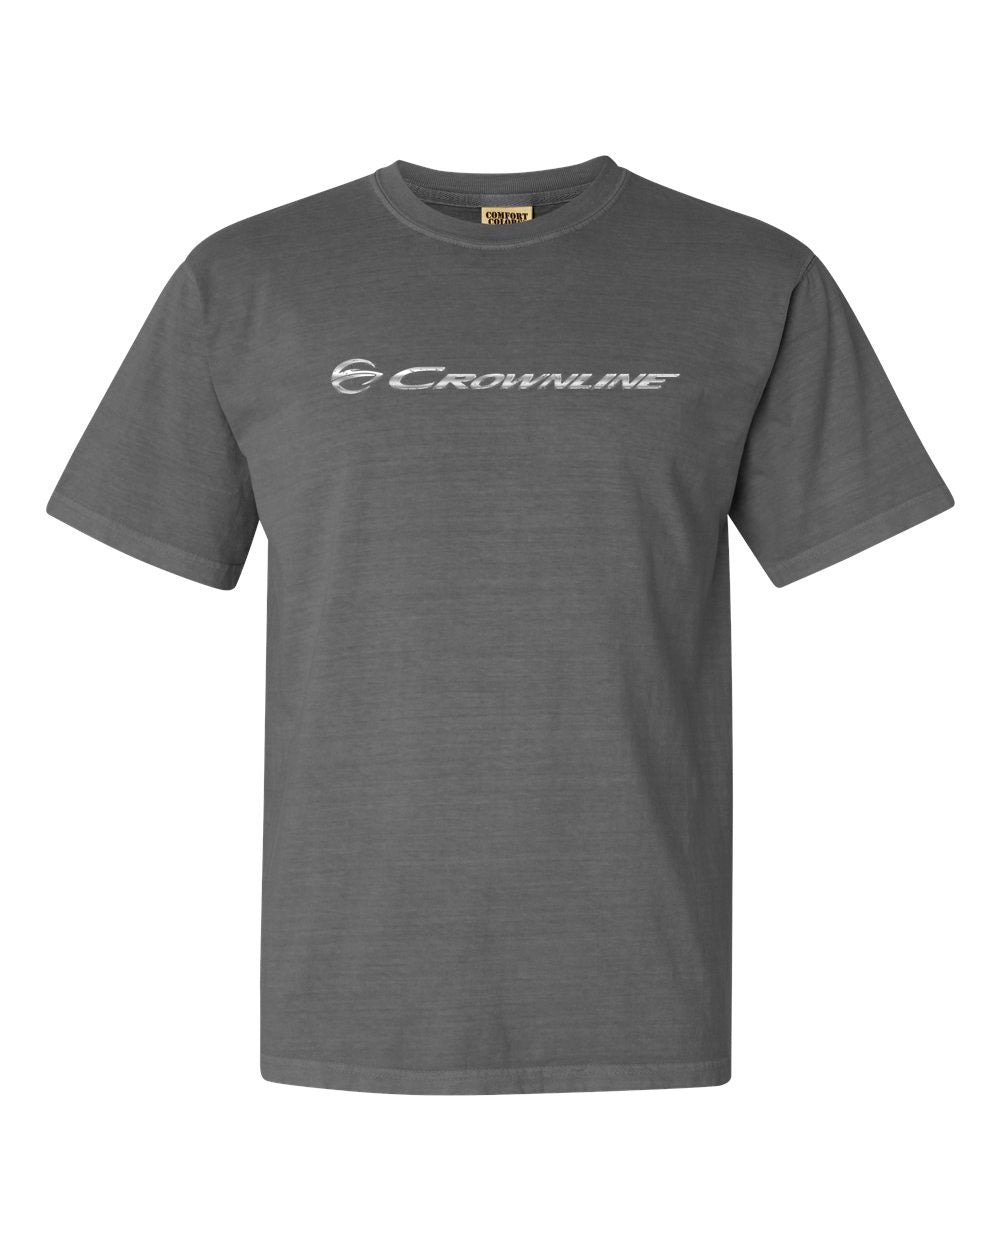 Crownline Heavyweight Garment Dyed Tee